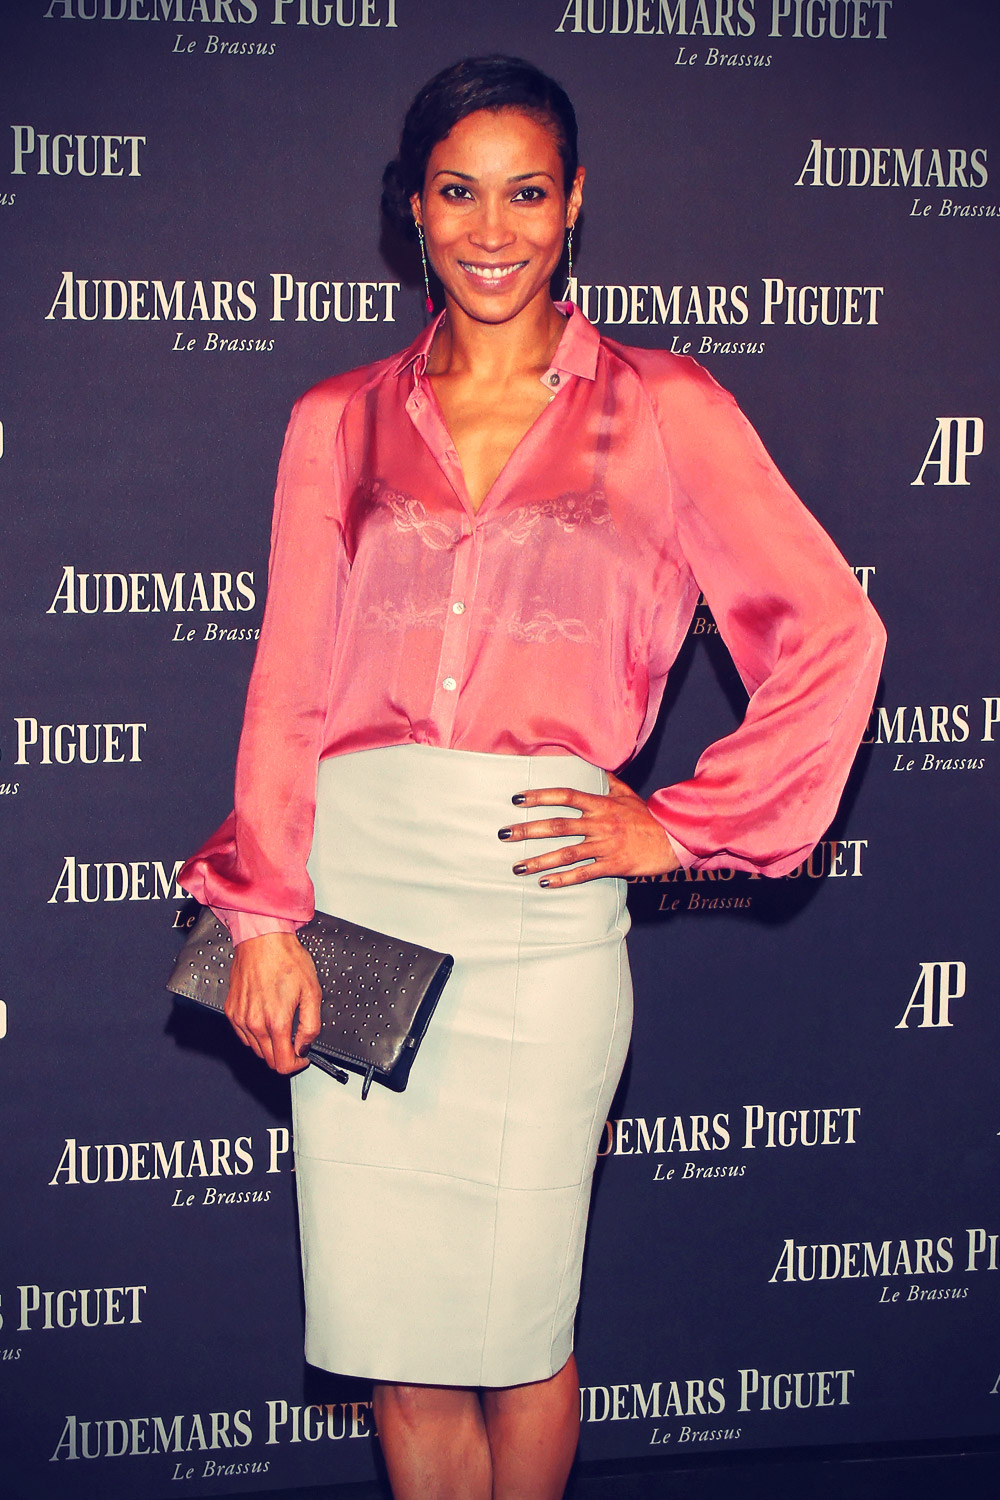 Annabell Mandeng at Audemars Piguet Dinner